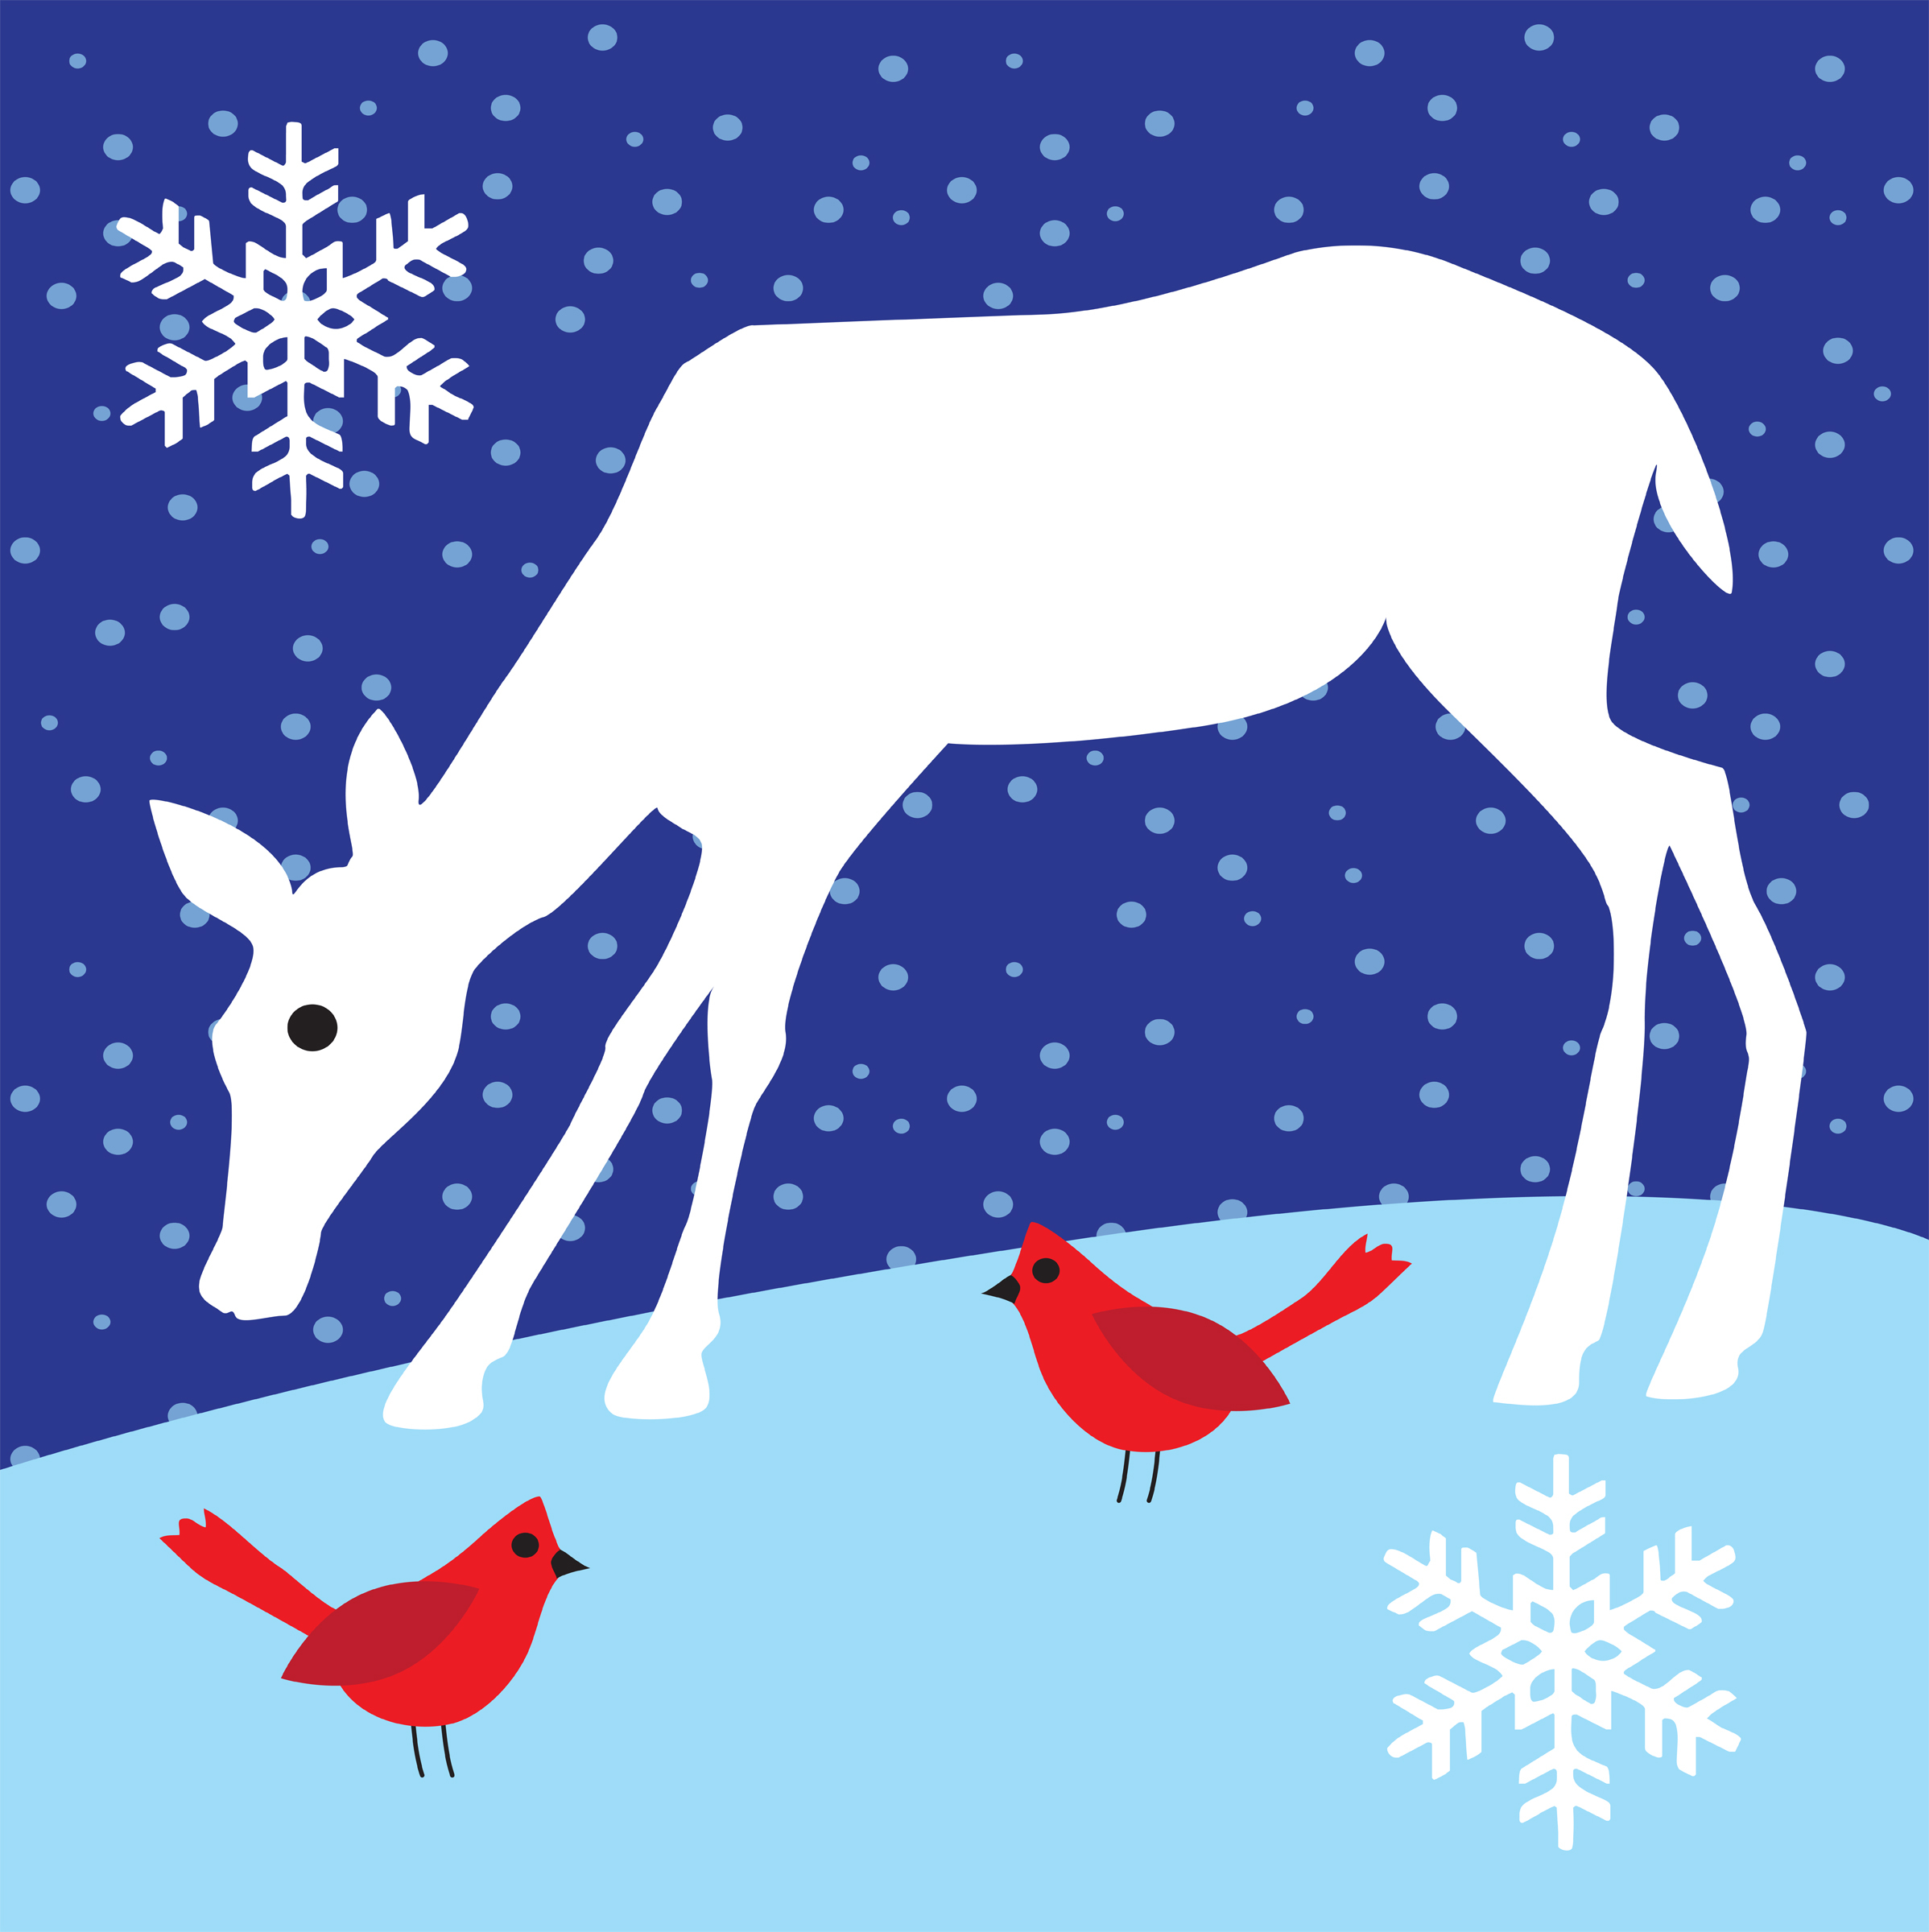 deer and cardinals in the snow from iclipart.com